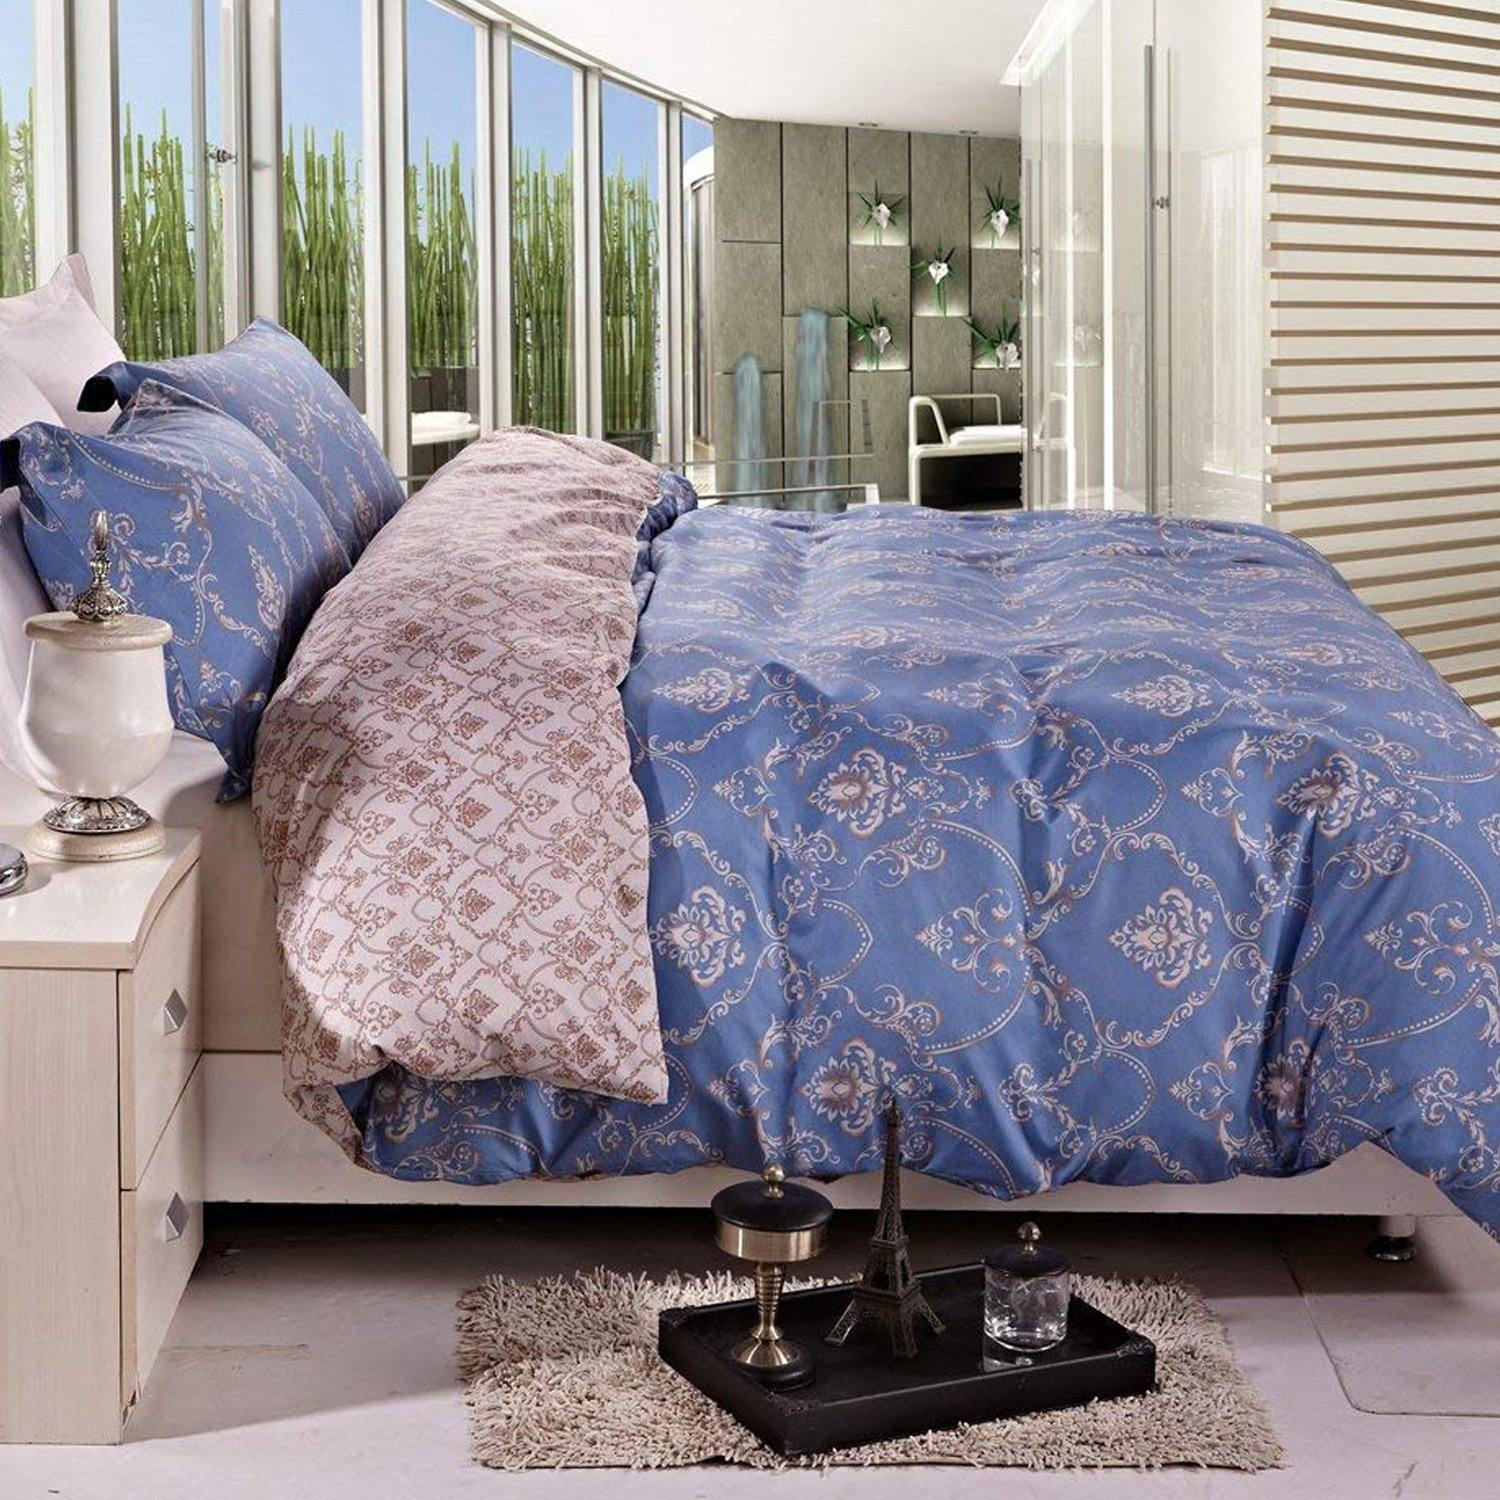 NTBAY 3 Pieces Duvet Cover Set Printed Microfiber Reversible Design - NTBAY